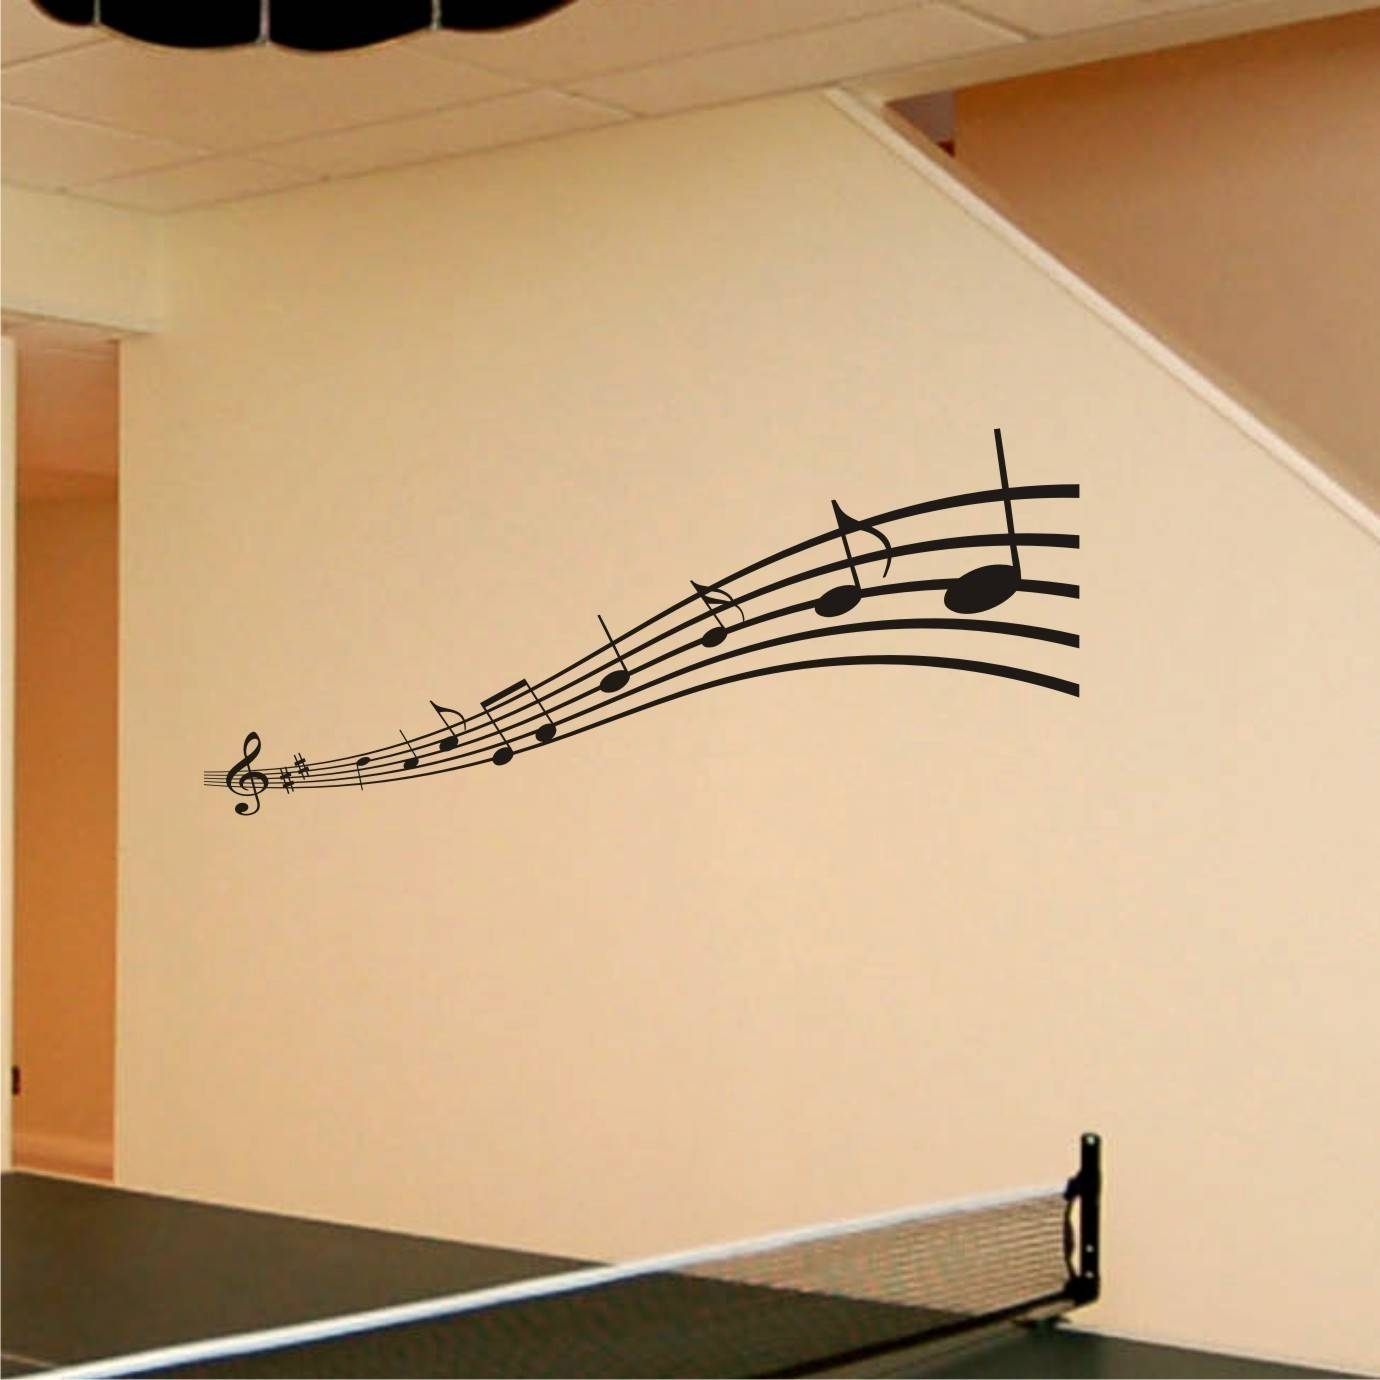 Mesmerizing 80+ Musical Wall Art Design Inspiration Of Best 25+ Regarding Recent Music Theme Wall Art (View 14 of 30)